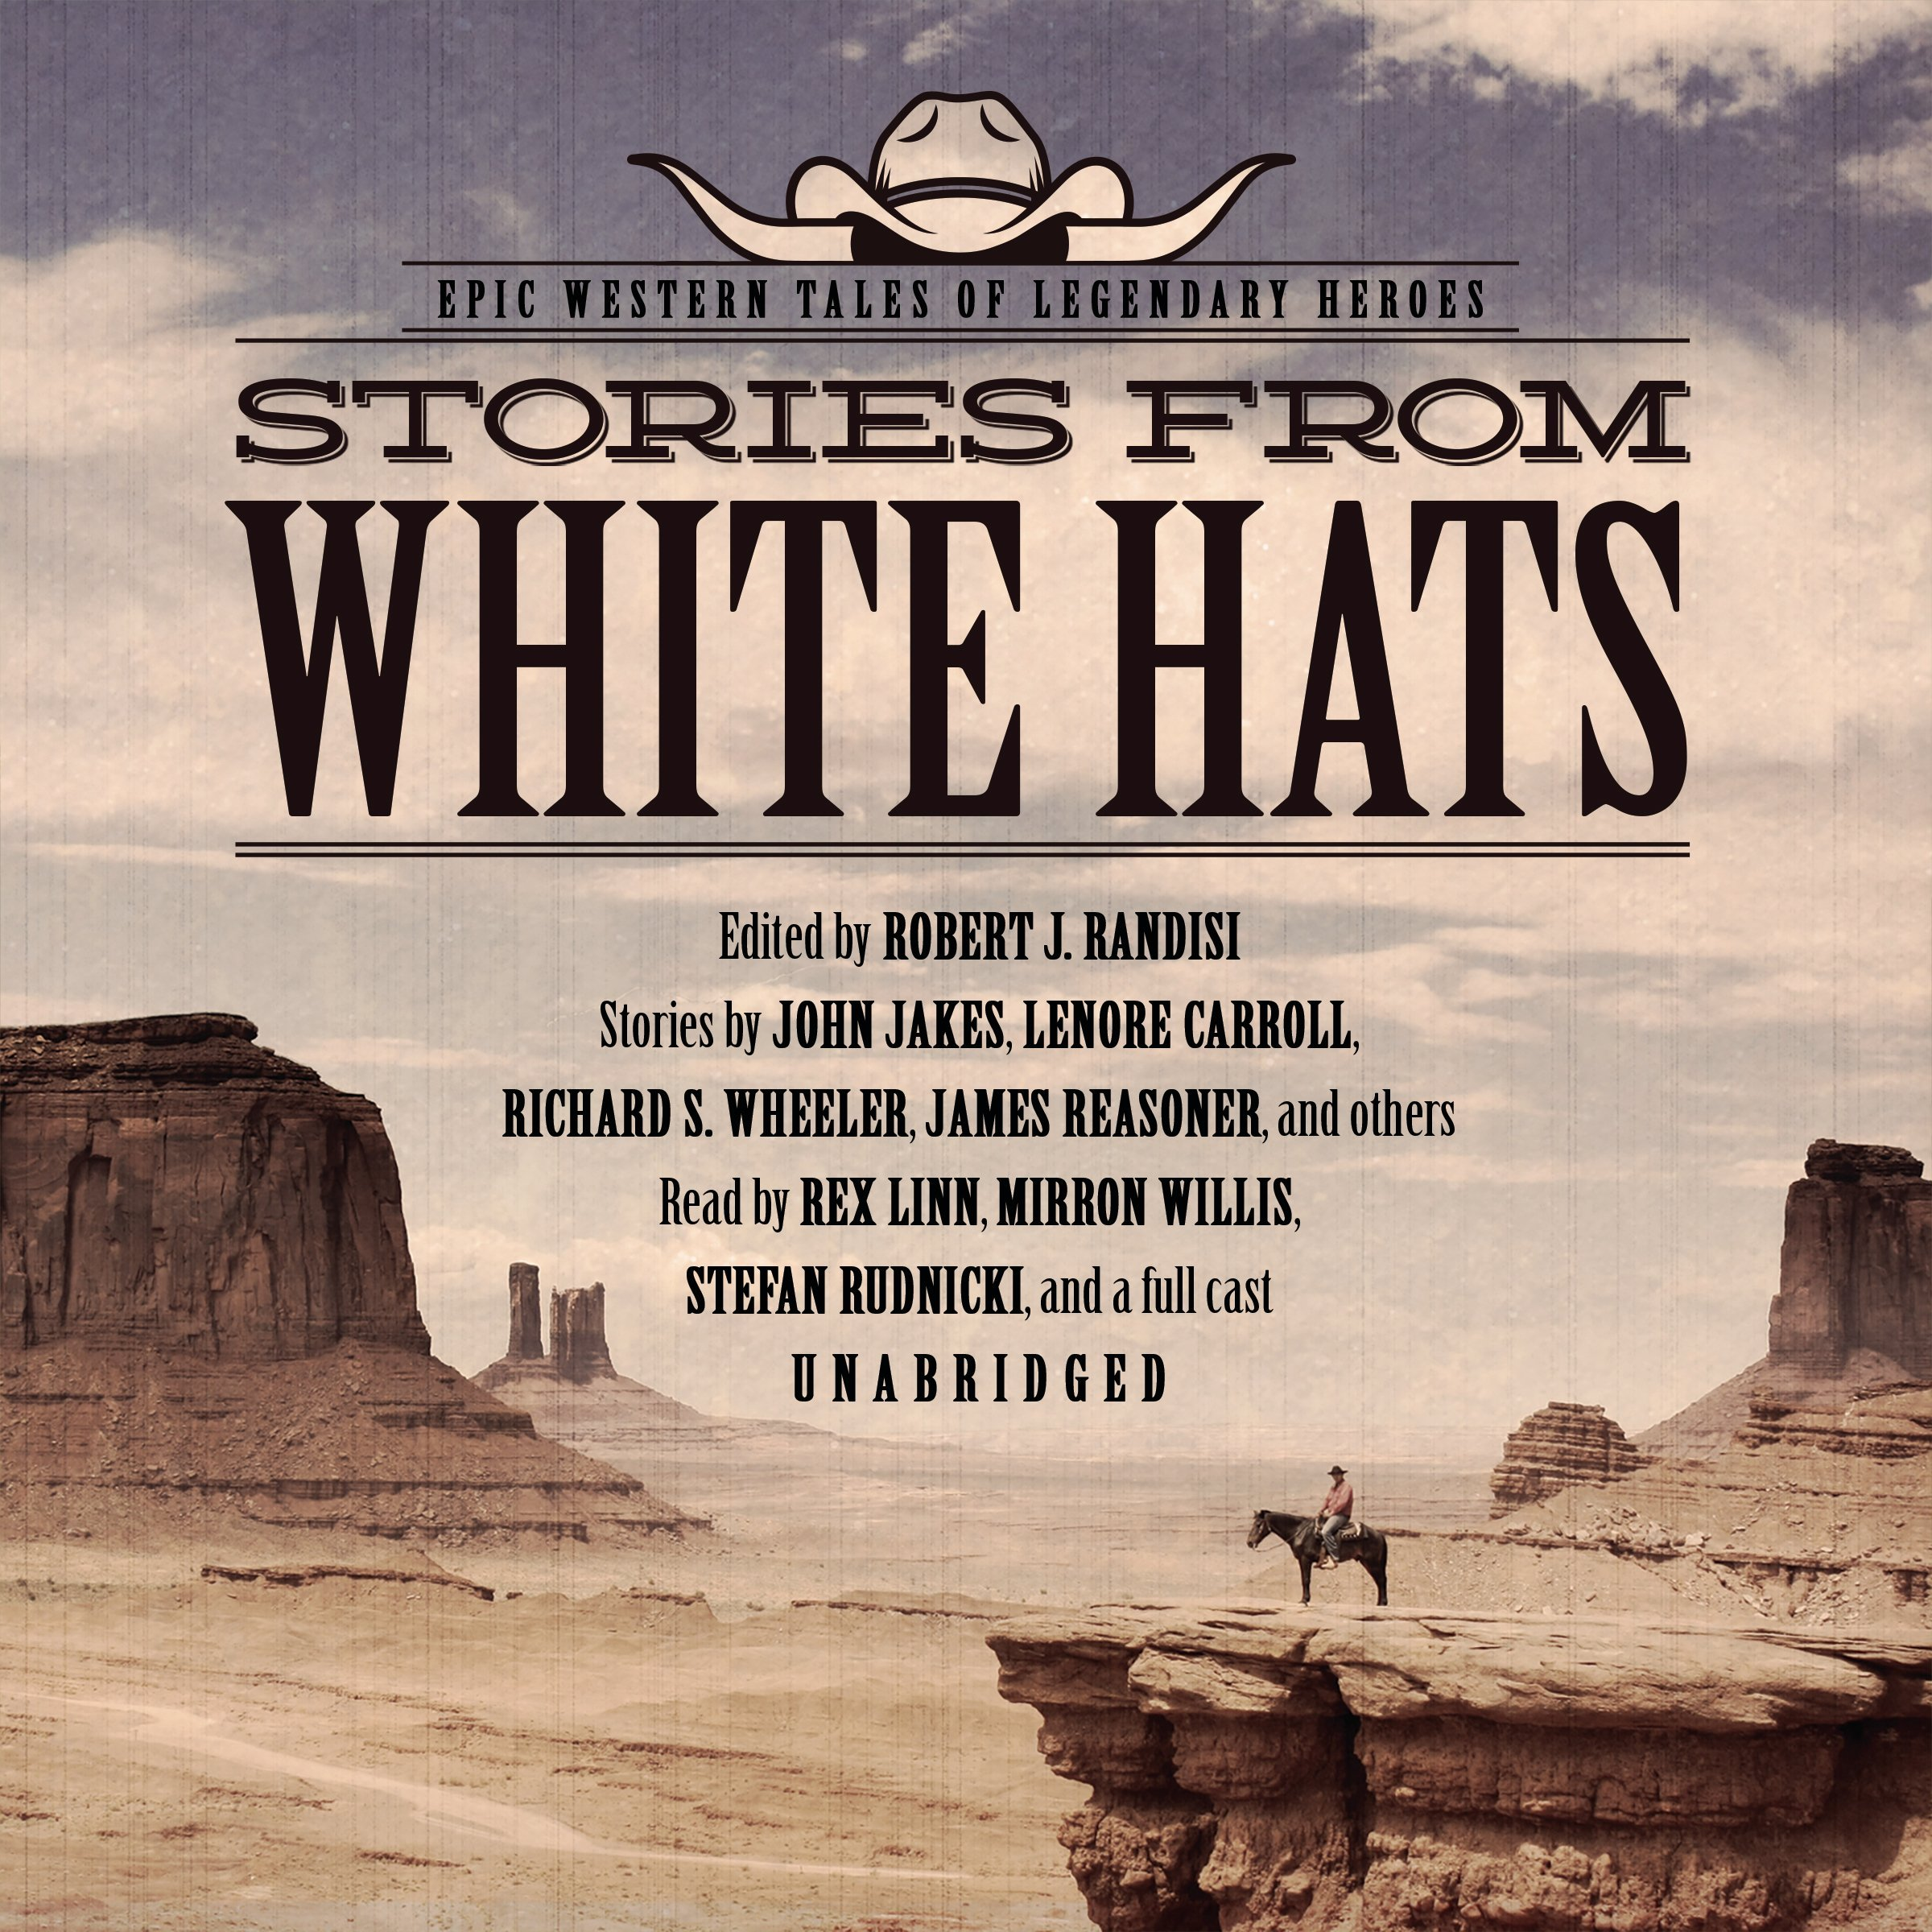 Stories from White Hats  Epic Western Tales of Legendary Heroes MP3 CD –  Audiobook c27a177804dd